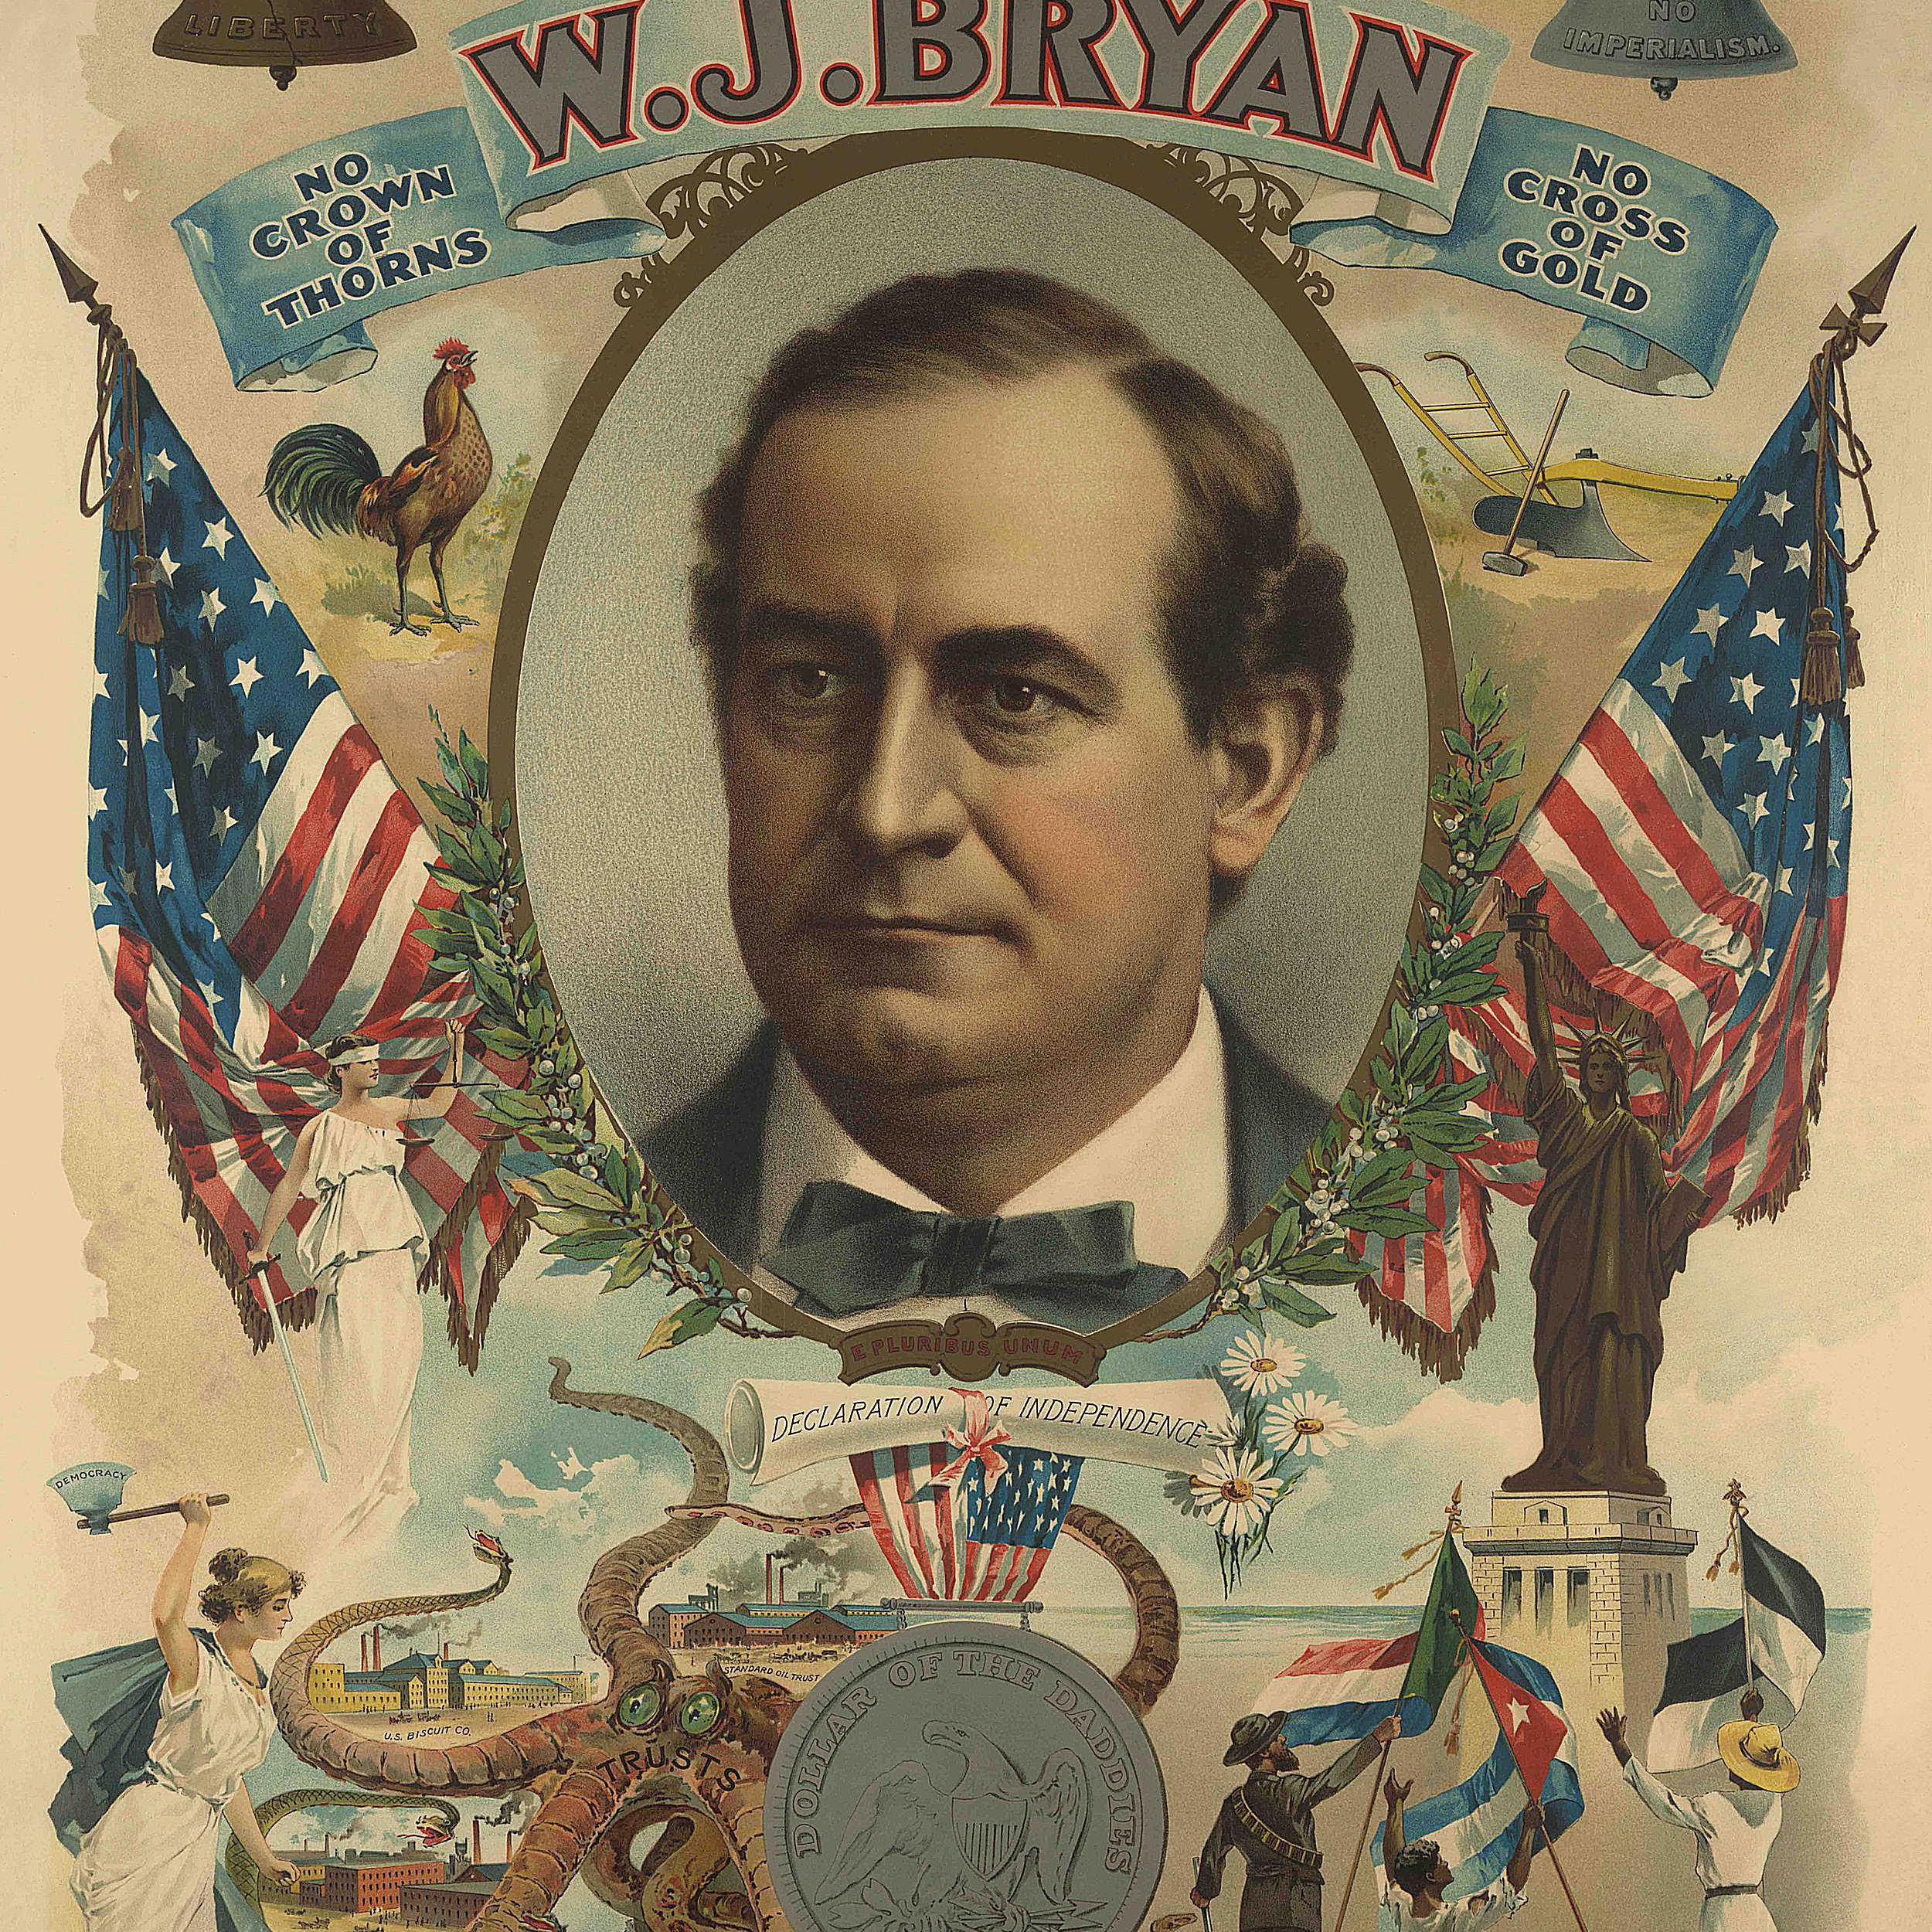 William Jennings Bryan: Candidate for President